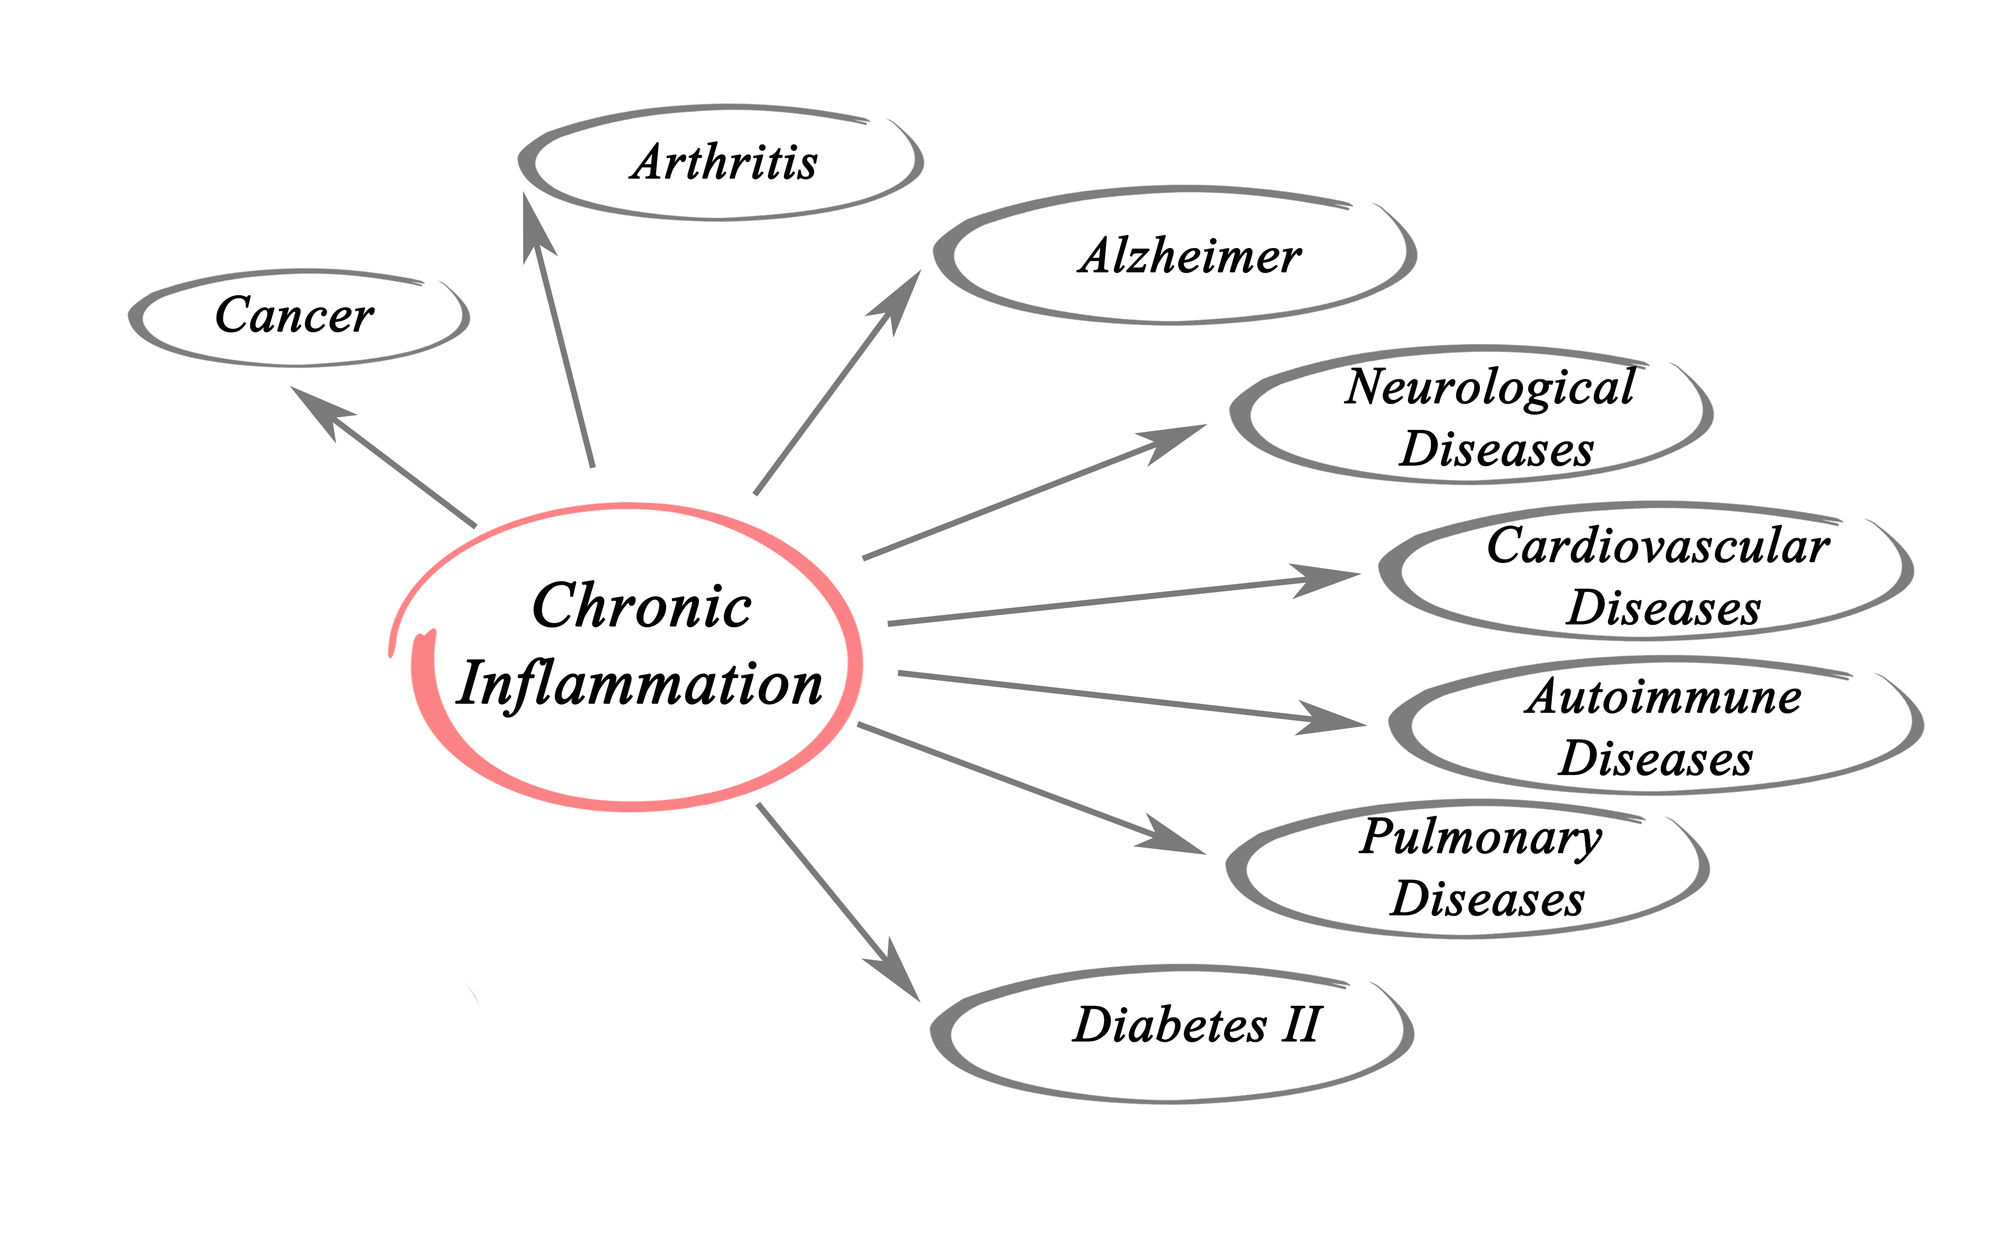 Chronic Inflammation can cause myriad of health complications.